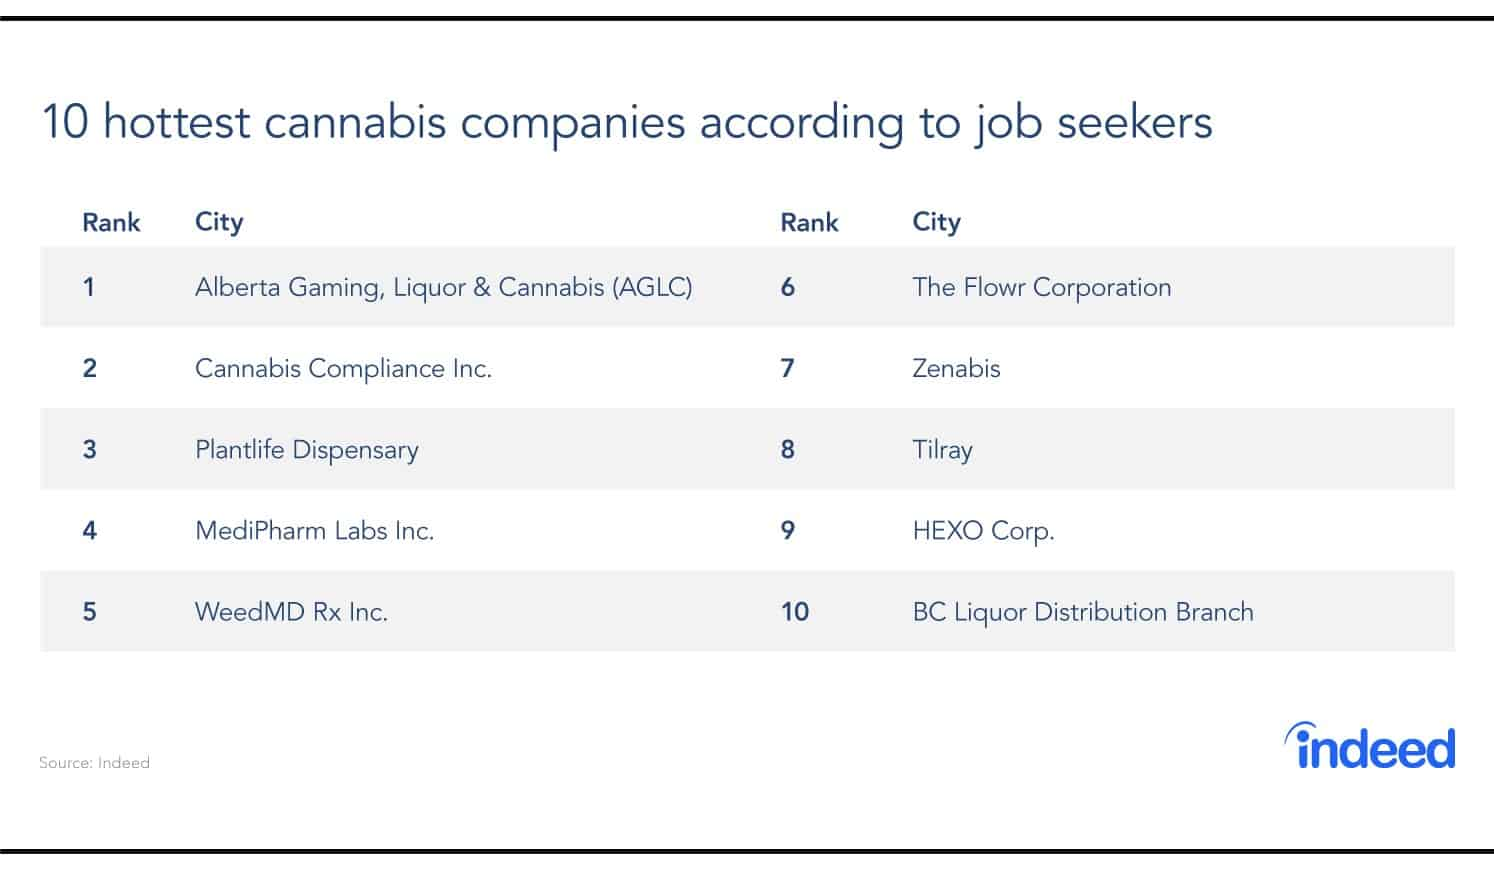 The 10 hottest companies in the cannabis industry